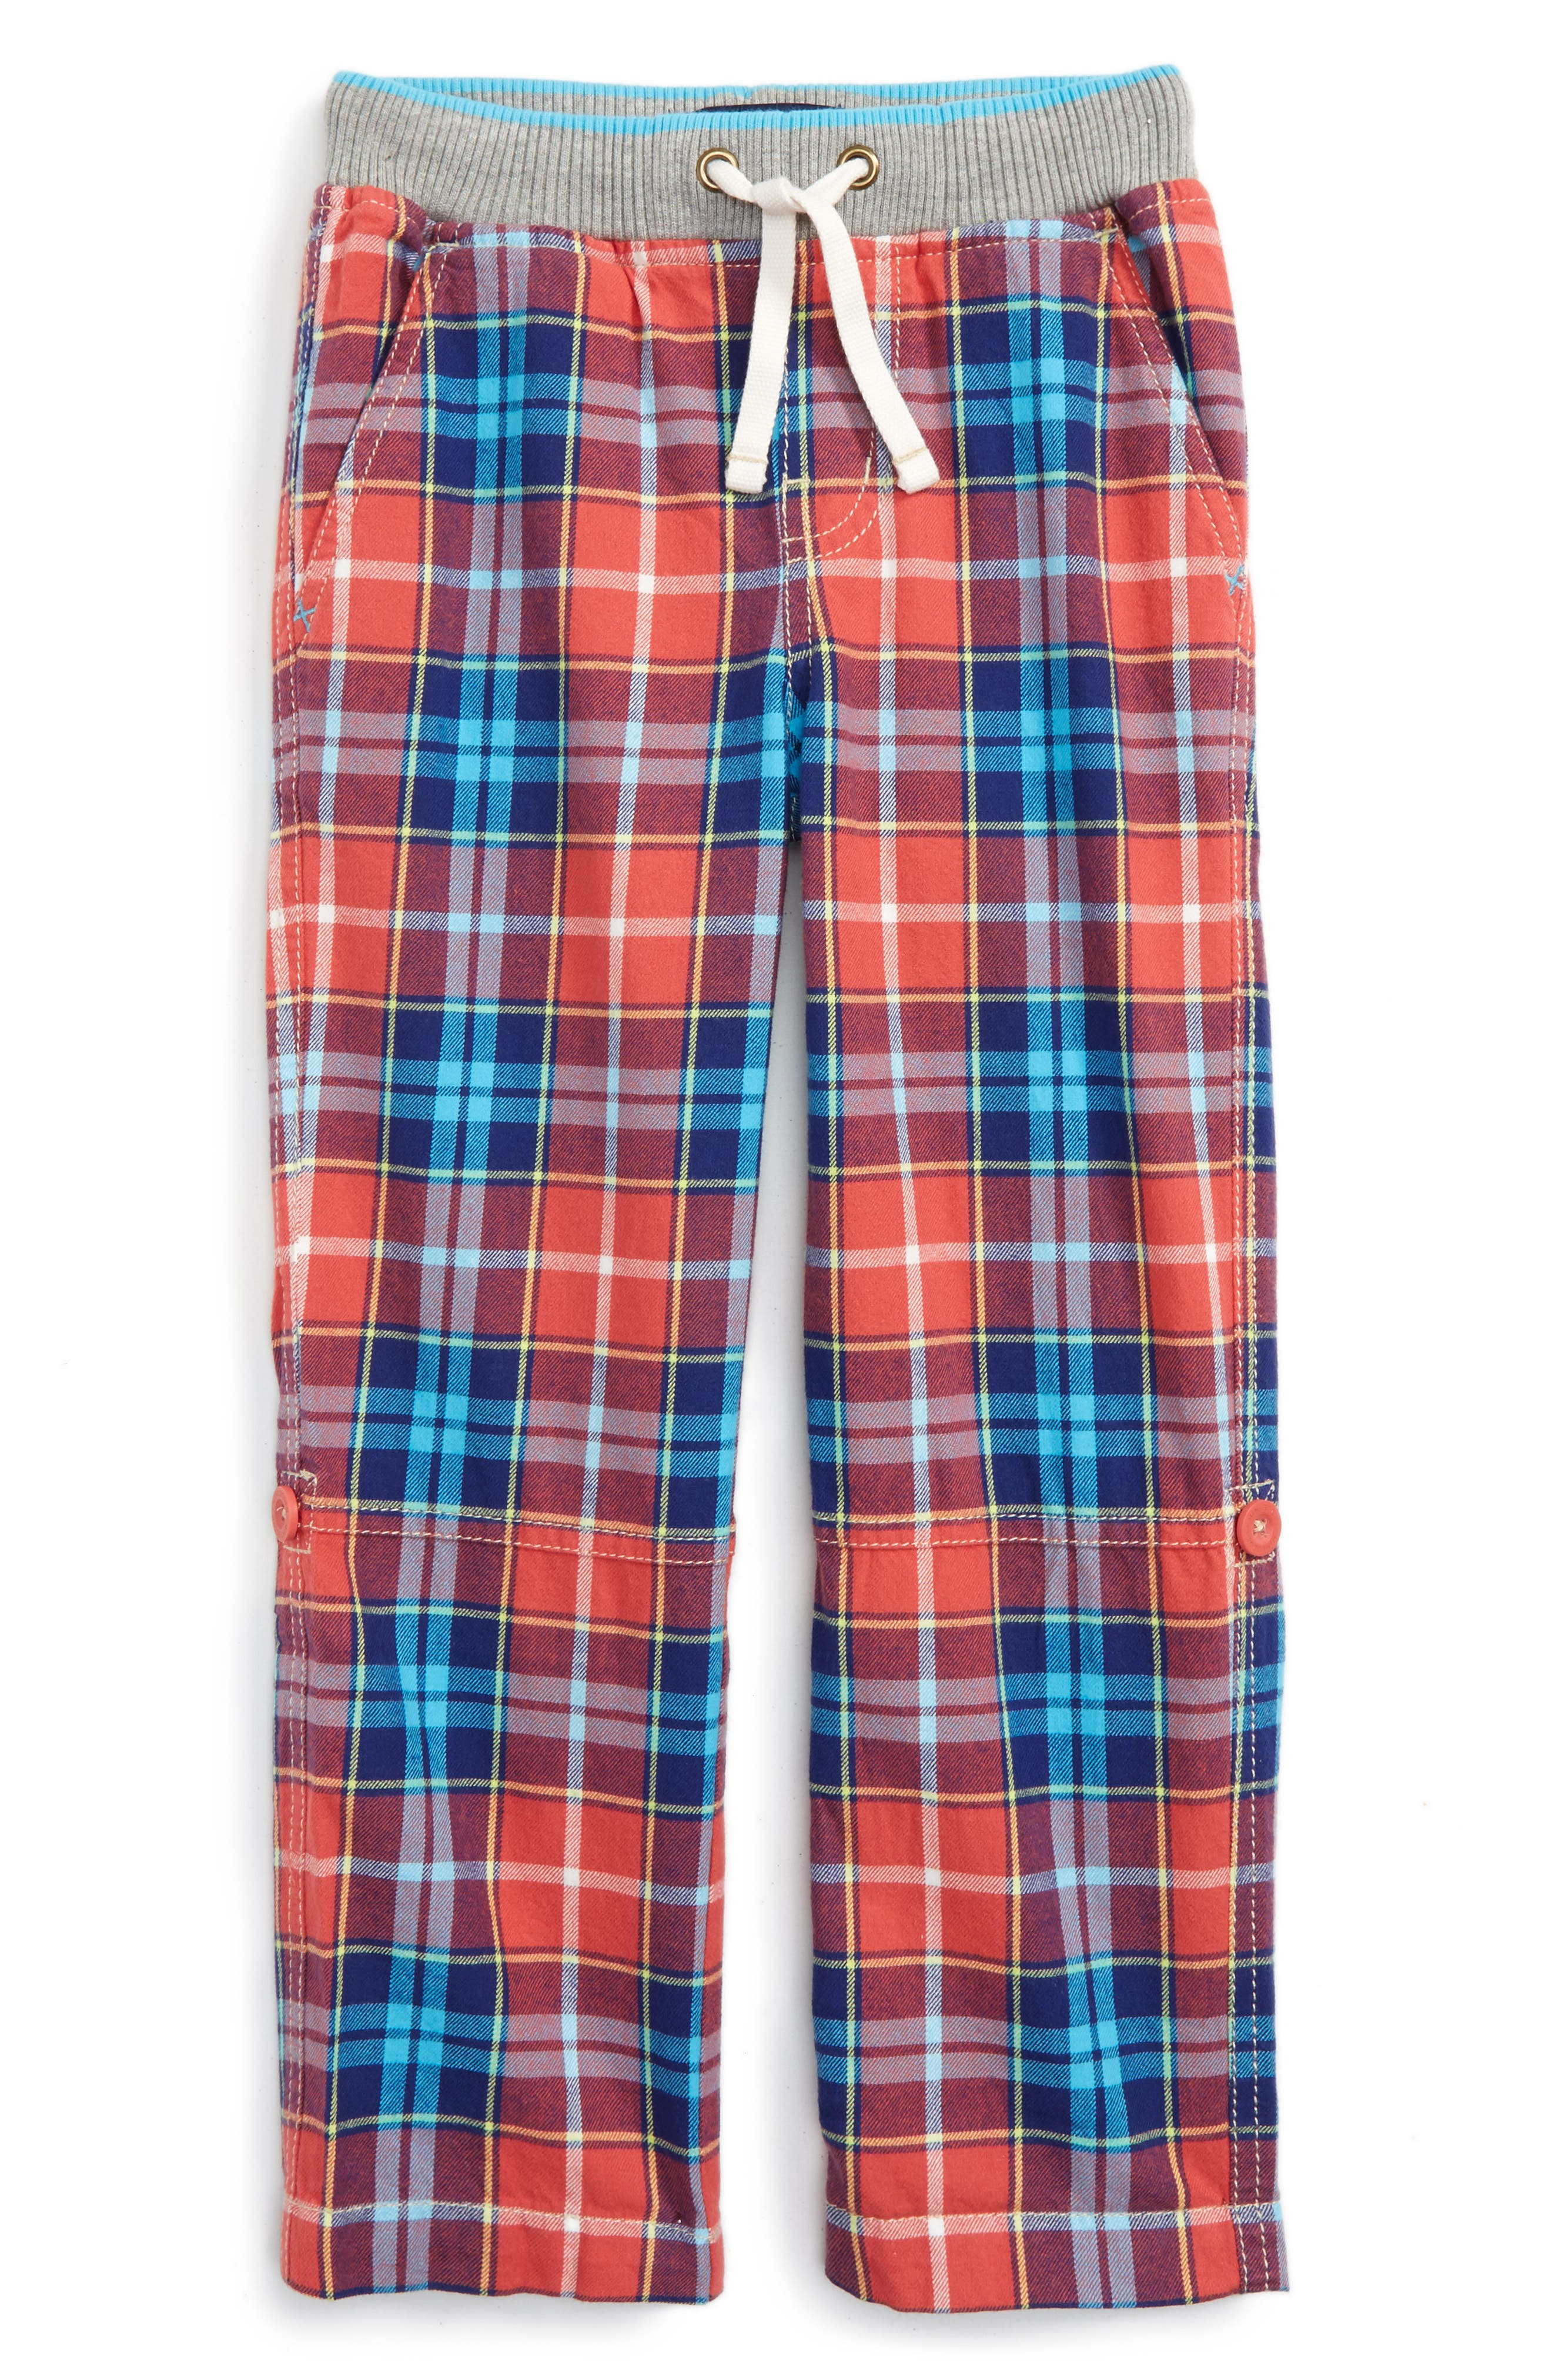 Main Image - Mini Boden Surf Roll-Up Pants (Toddler Boys, Little Boys & Big Boys)